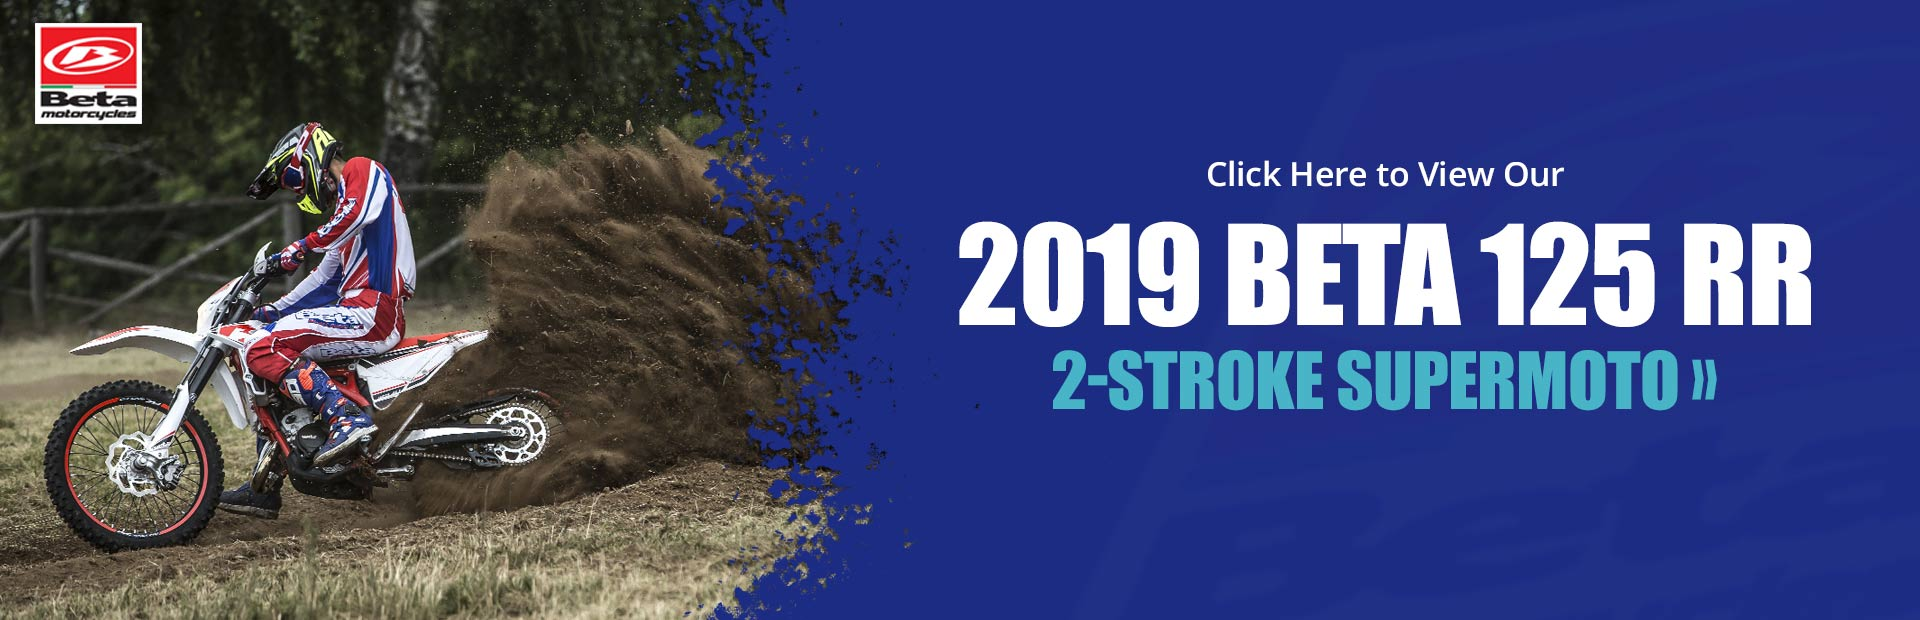 Click here to view our 2019 Beta 125 RR 2-Stroke Supermoto!